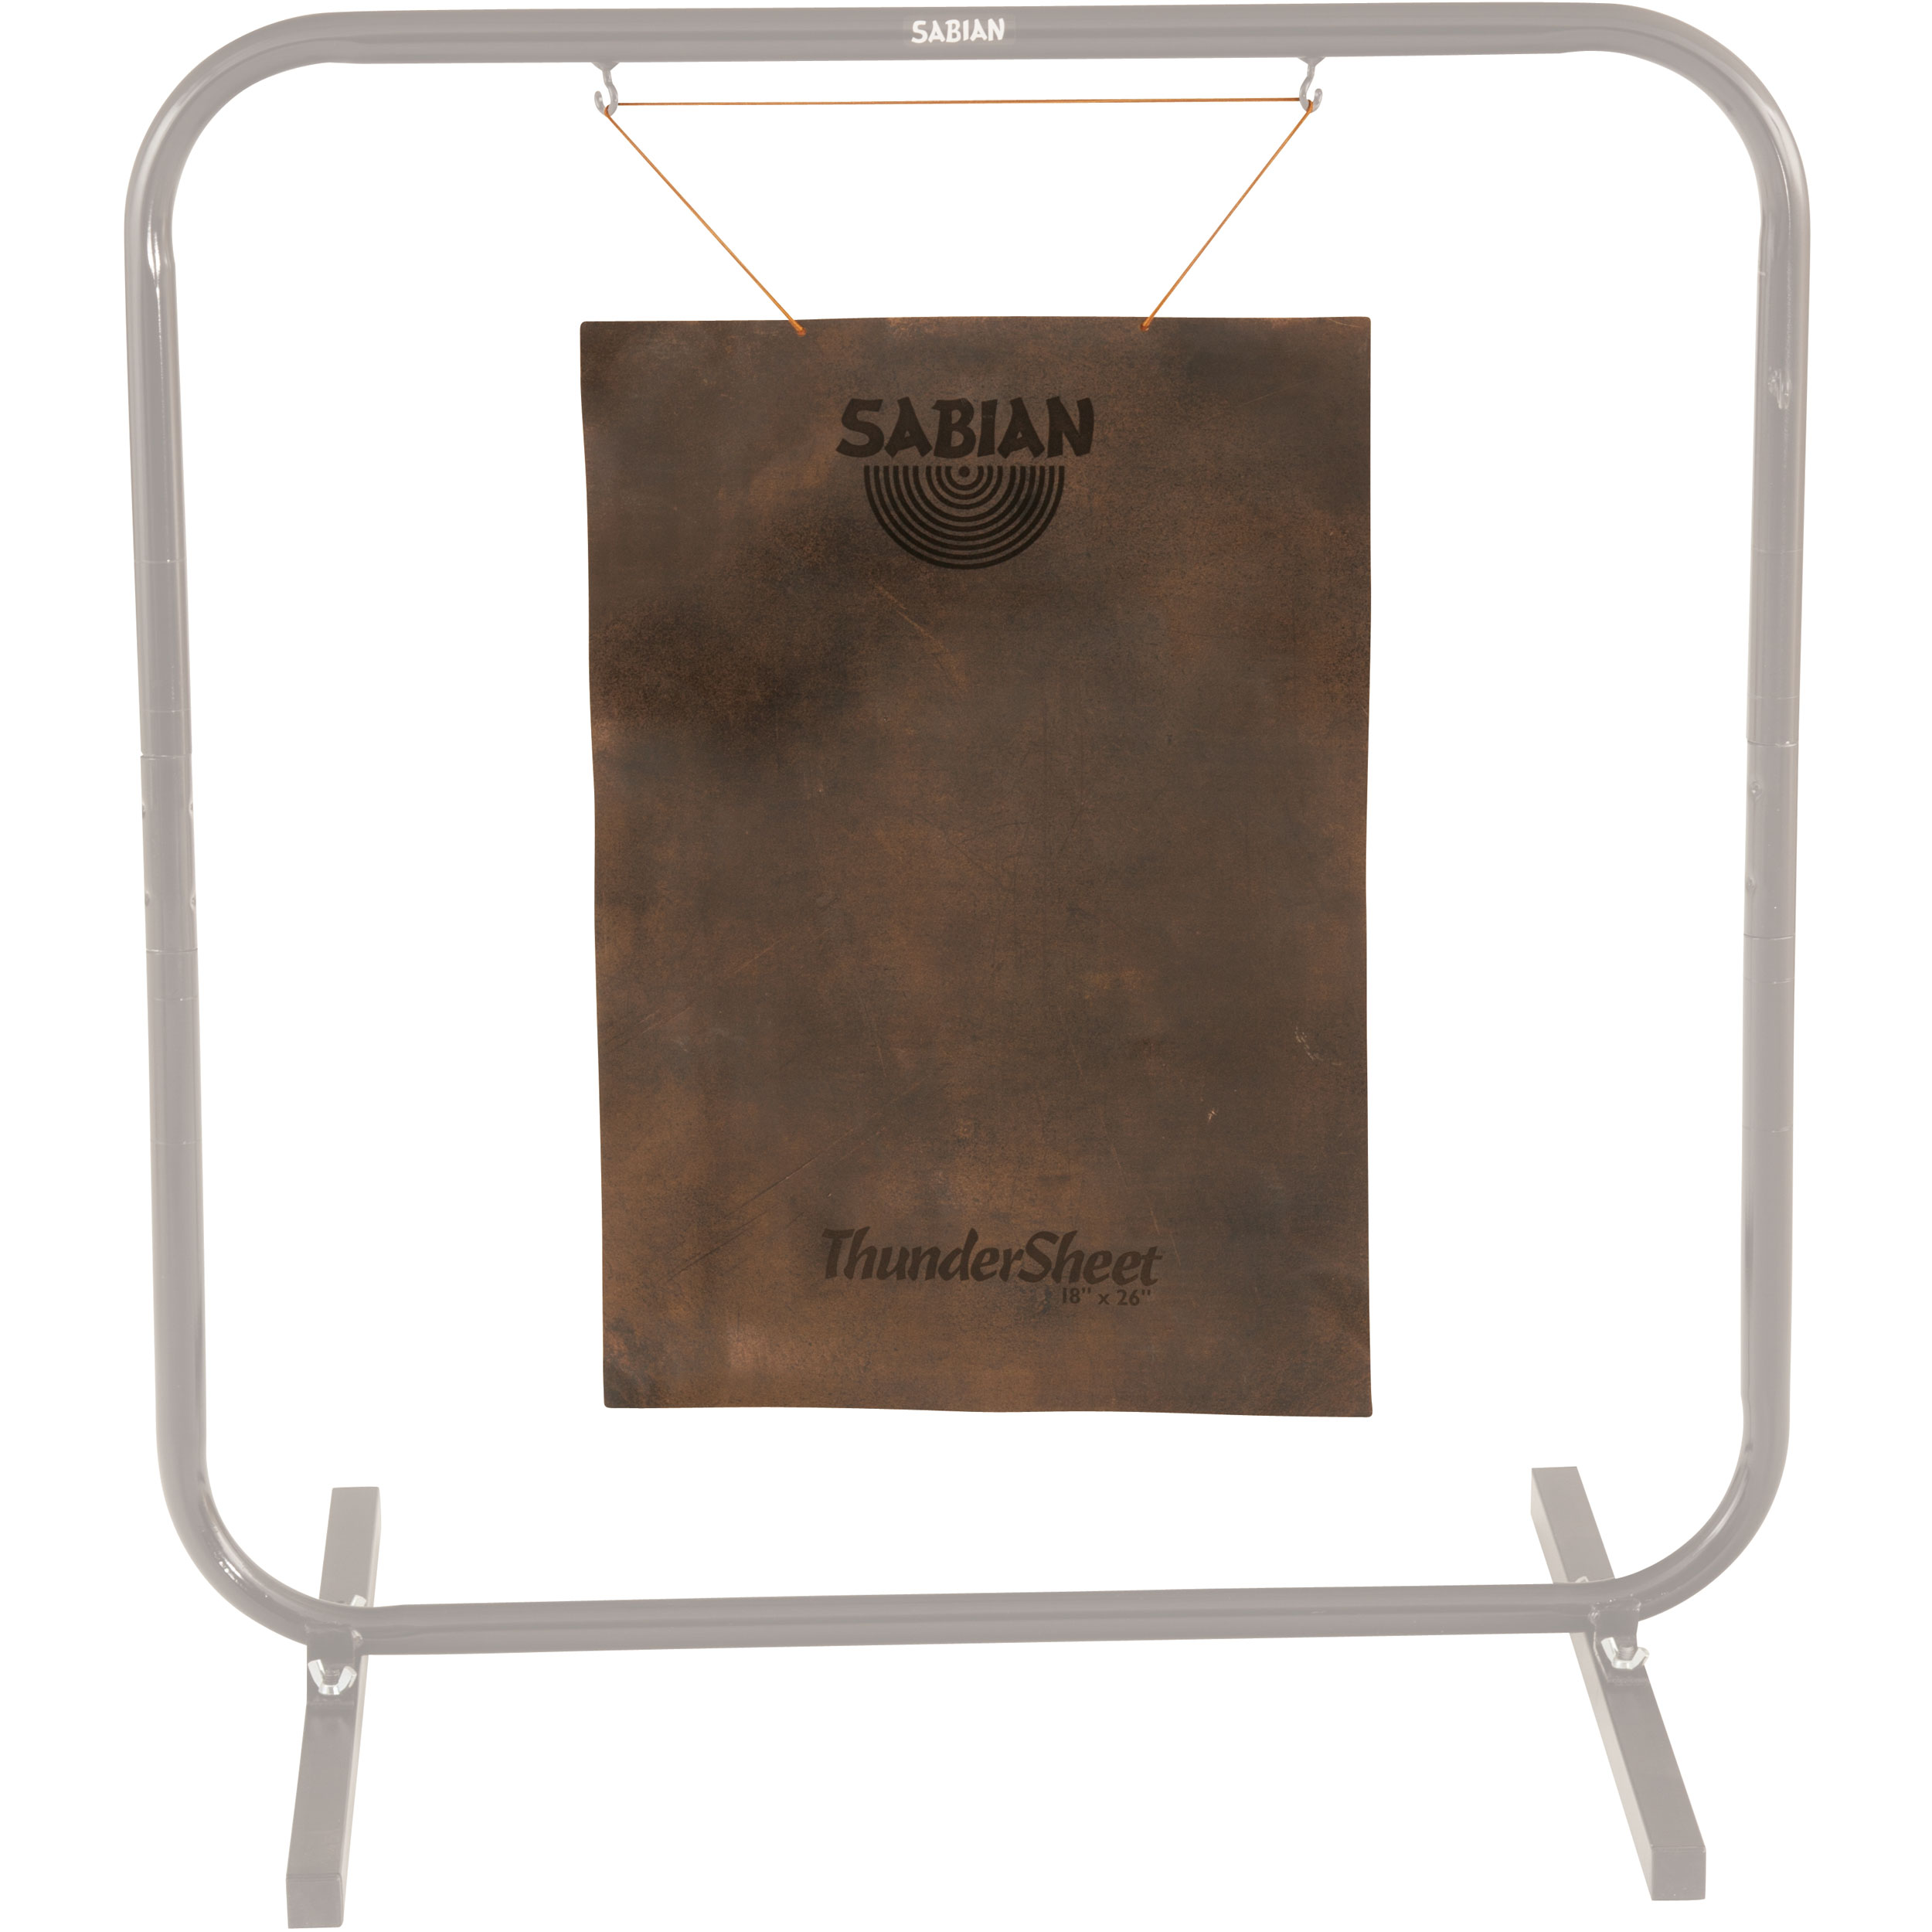 "Sabian 18 x 26"" Thunder Sheet"